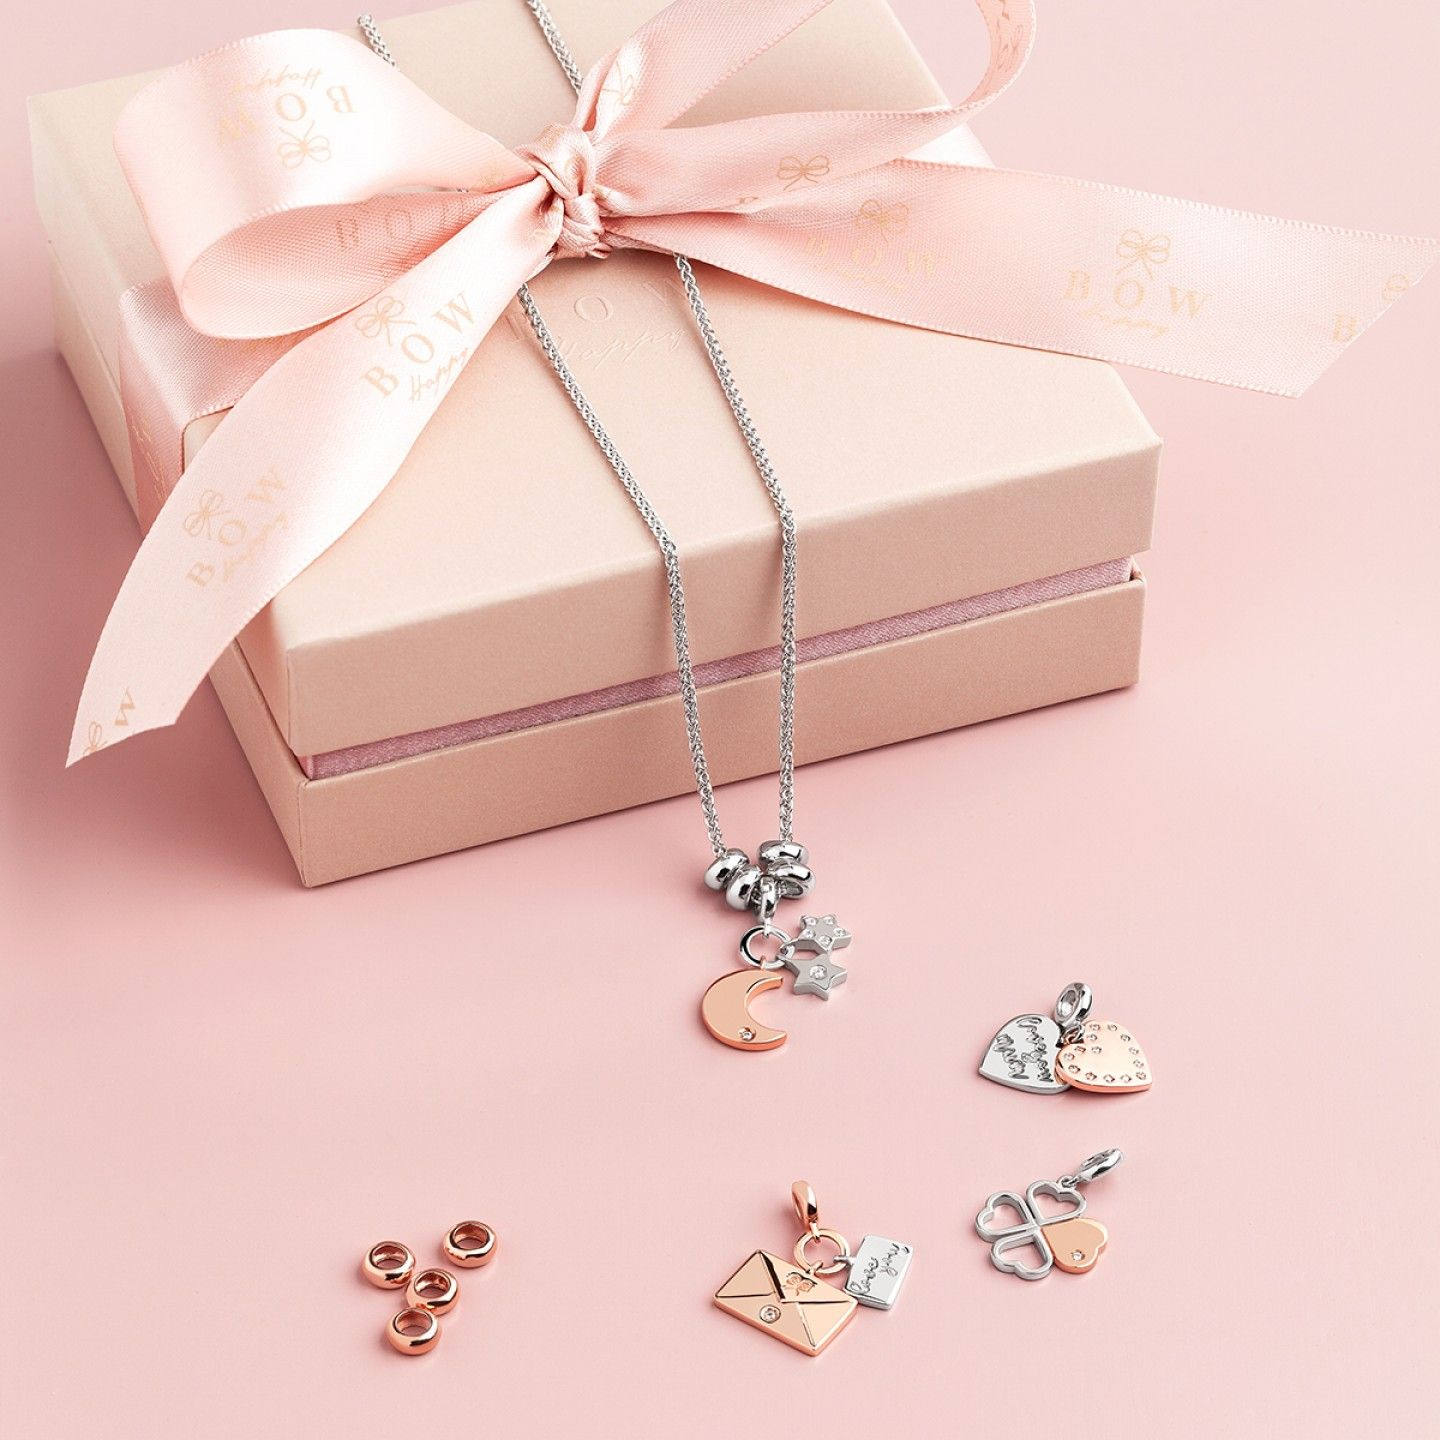 Charm BOW HAPPY Love Stories Letter